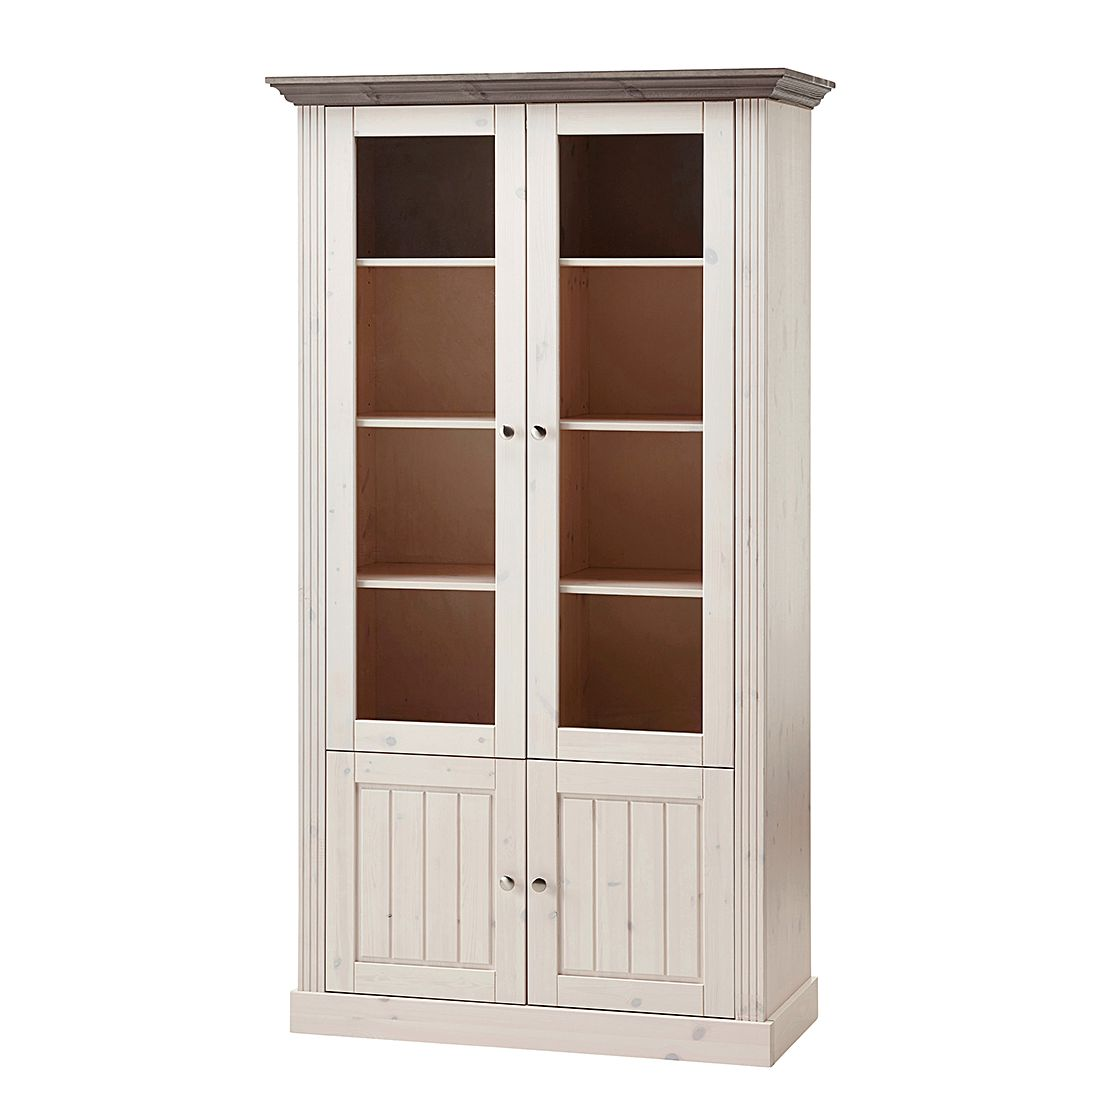 Armoire vitrine Lyngby I - Pin massif - Blanc / Gris minéral, Maison Belfort